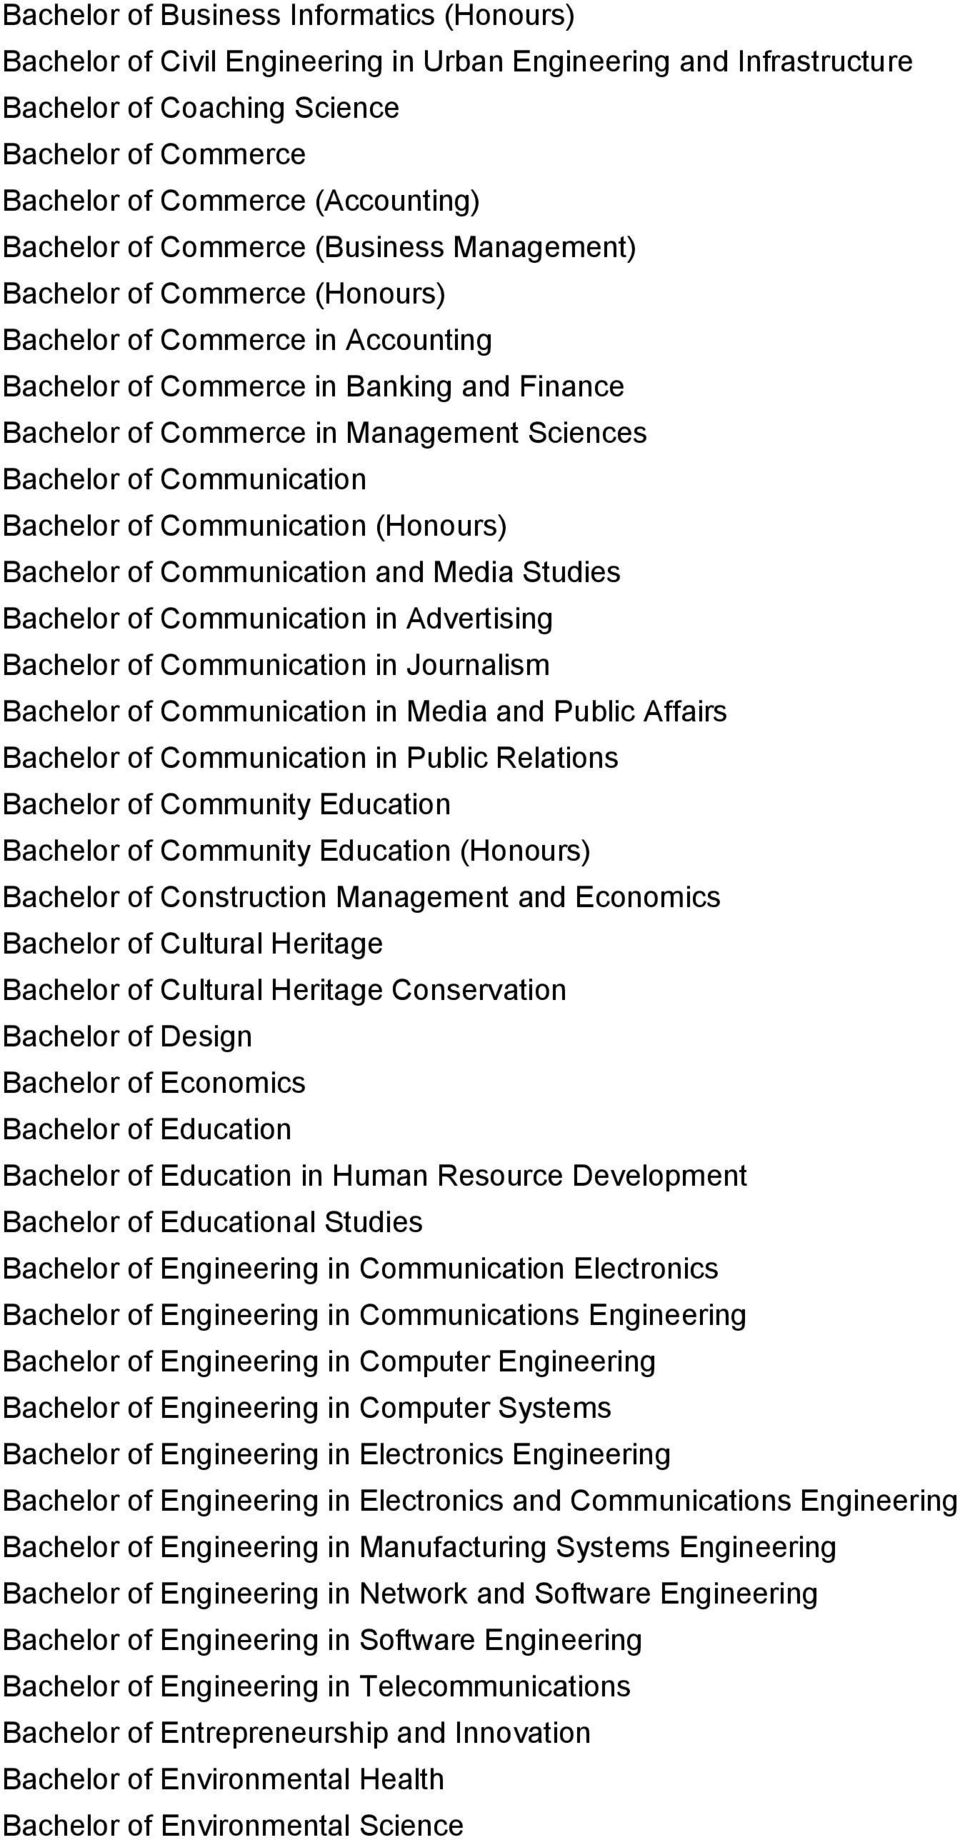 Bachelor of Communication Bachelor of Communication (Honours) Bachelor of Communication and Media Studies Bachelor of Communication in Advertising Bachelor of Communication in Journalism Bachelor of